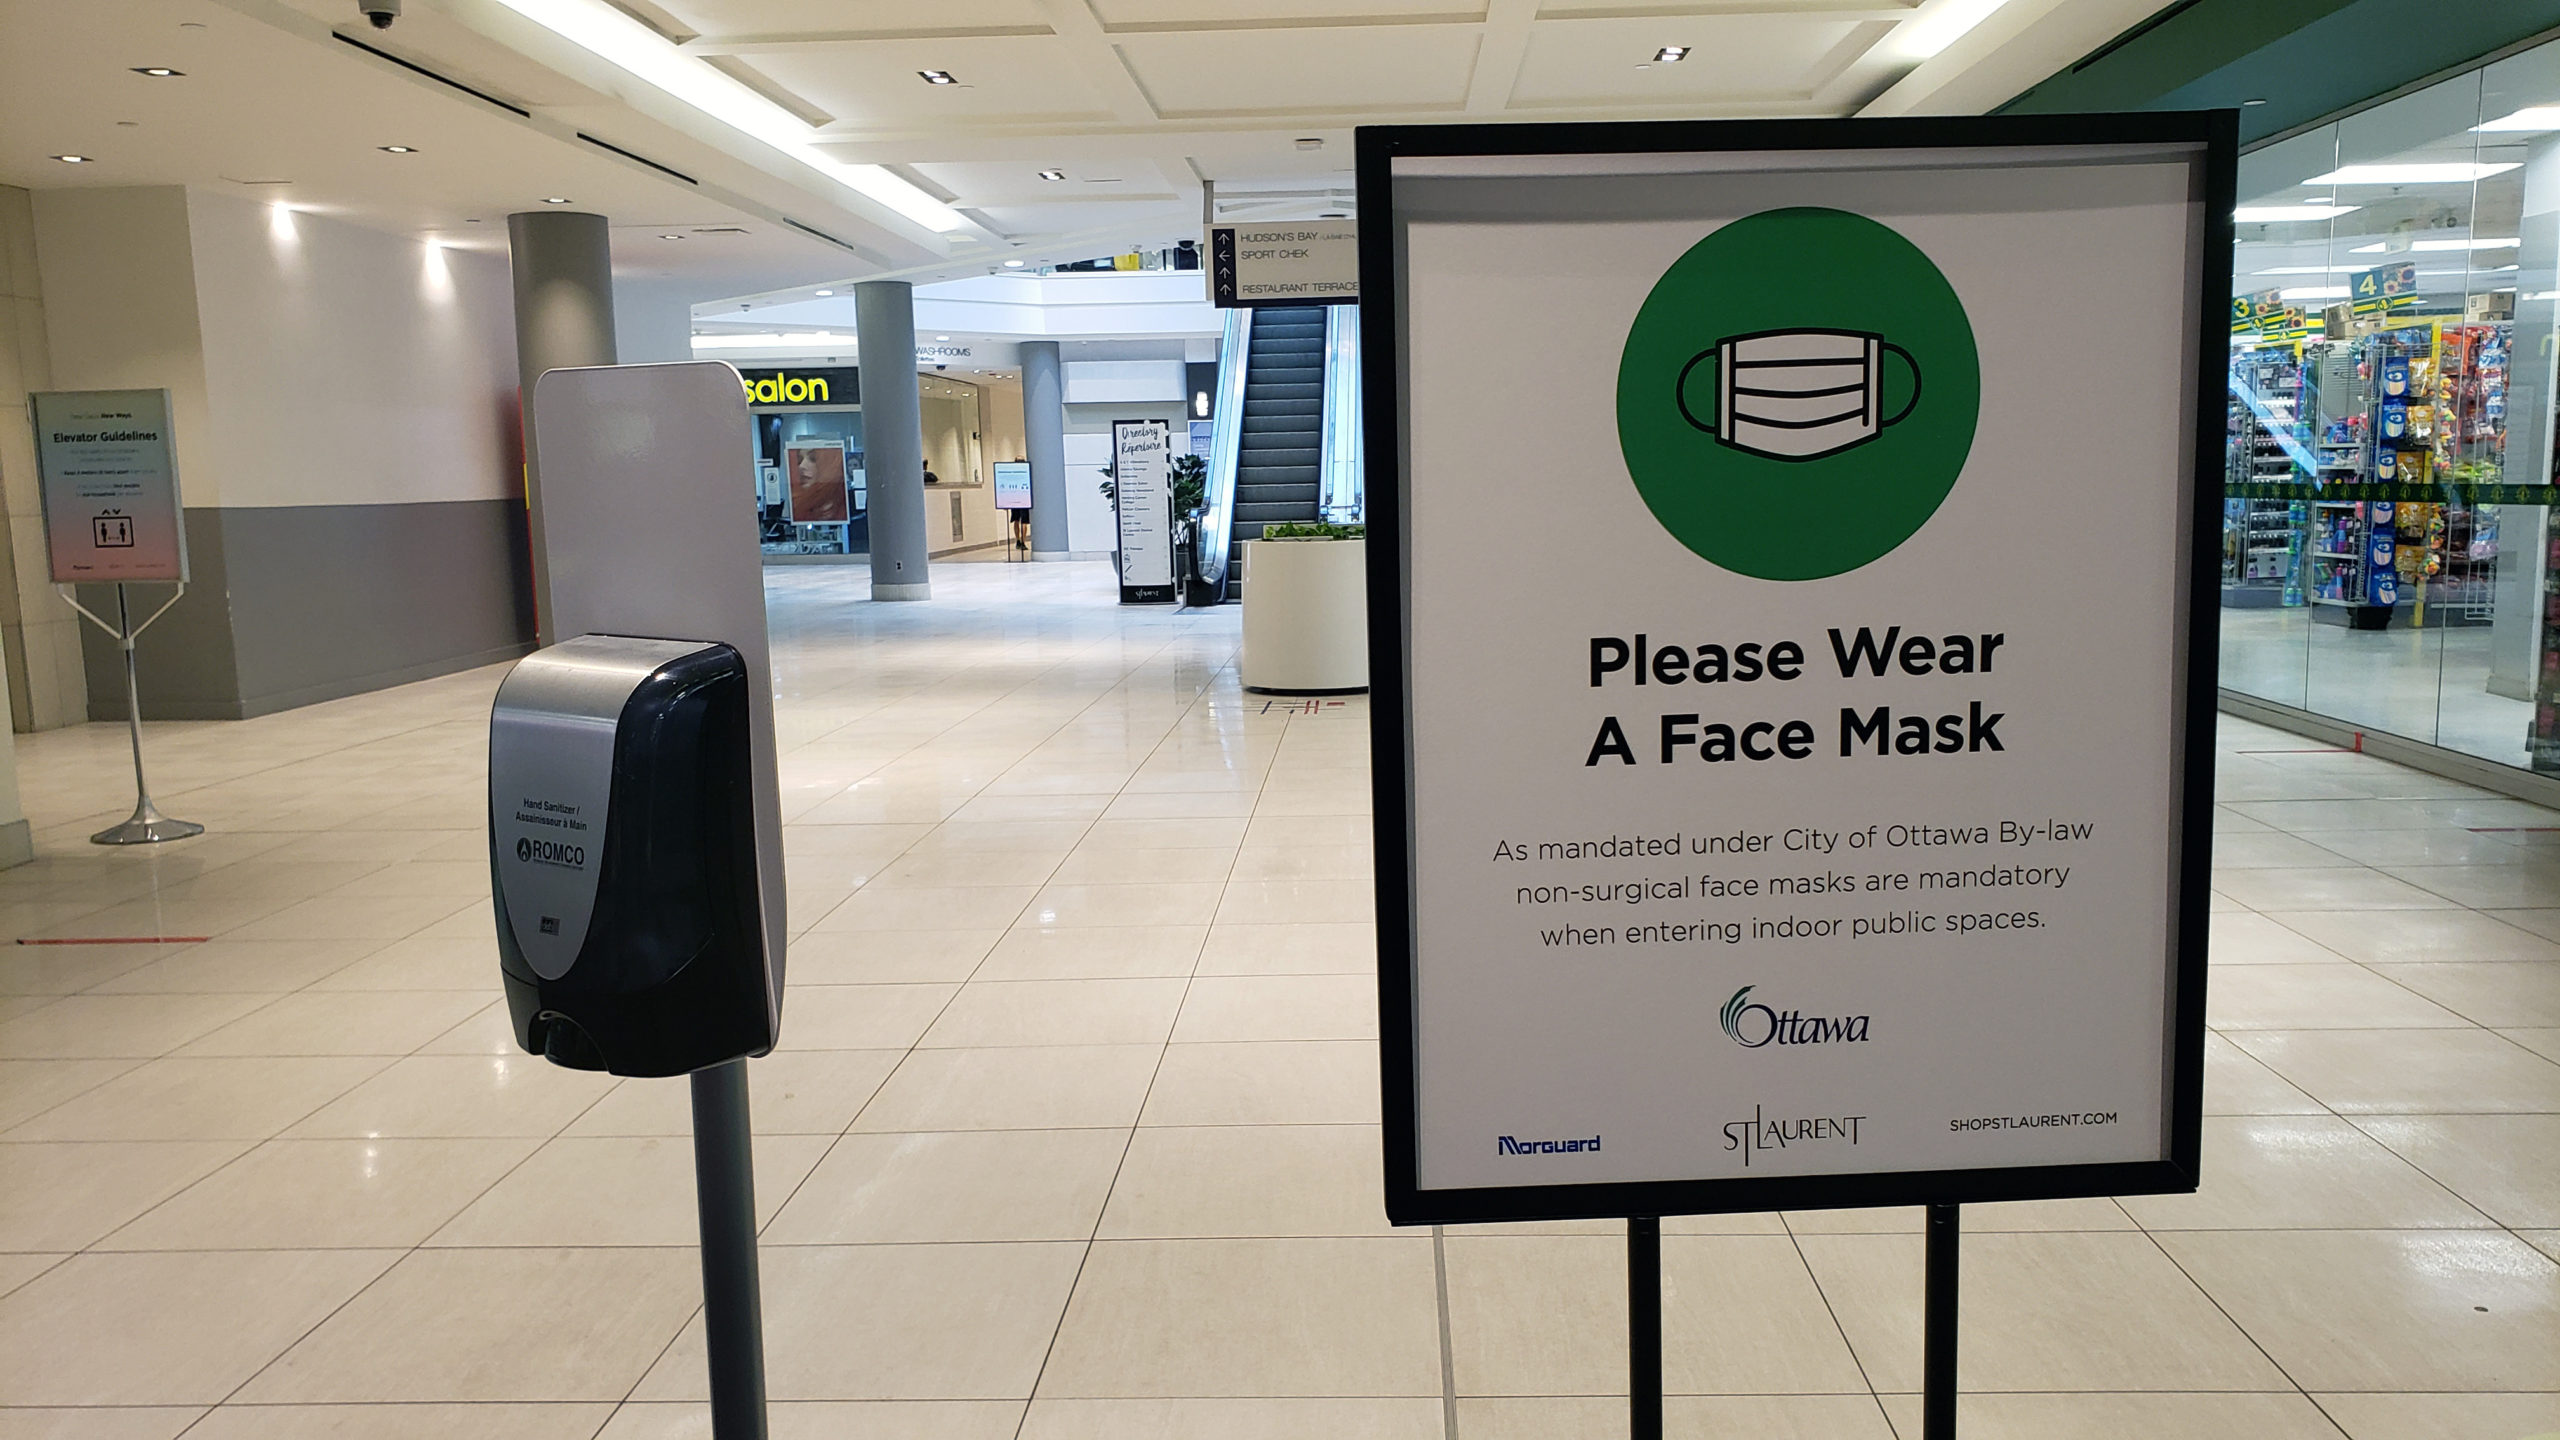 British Columbians could face $230 fine for violating Mandatory mask order in public, indoor places